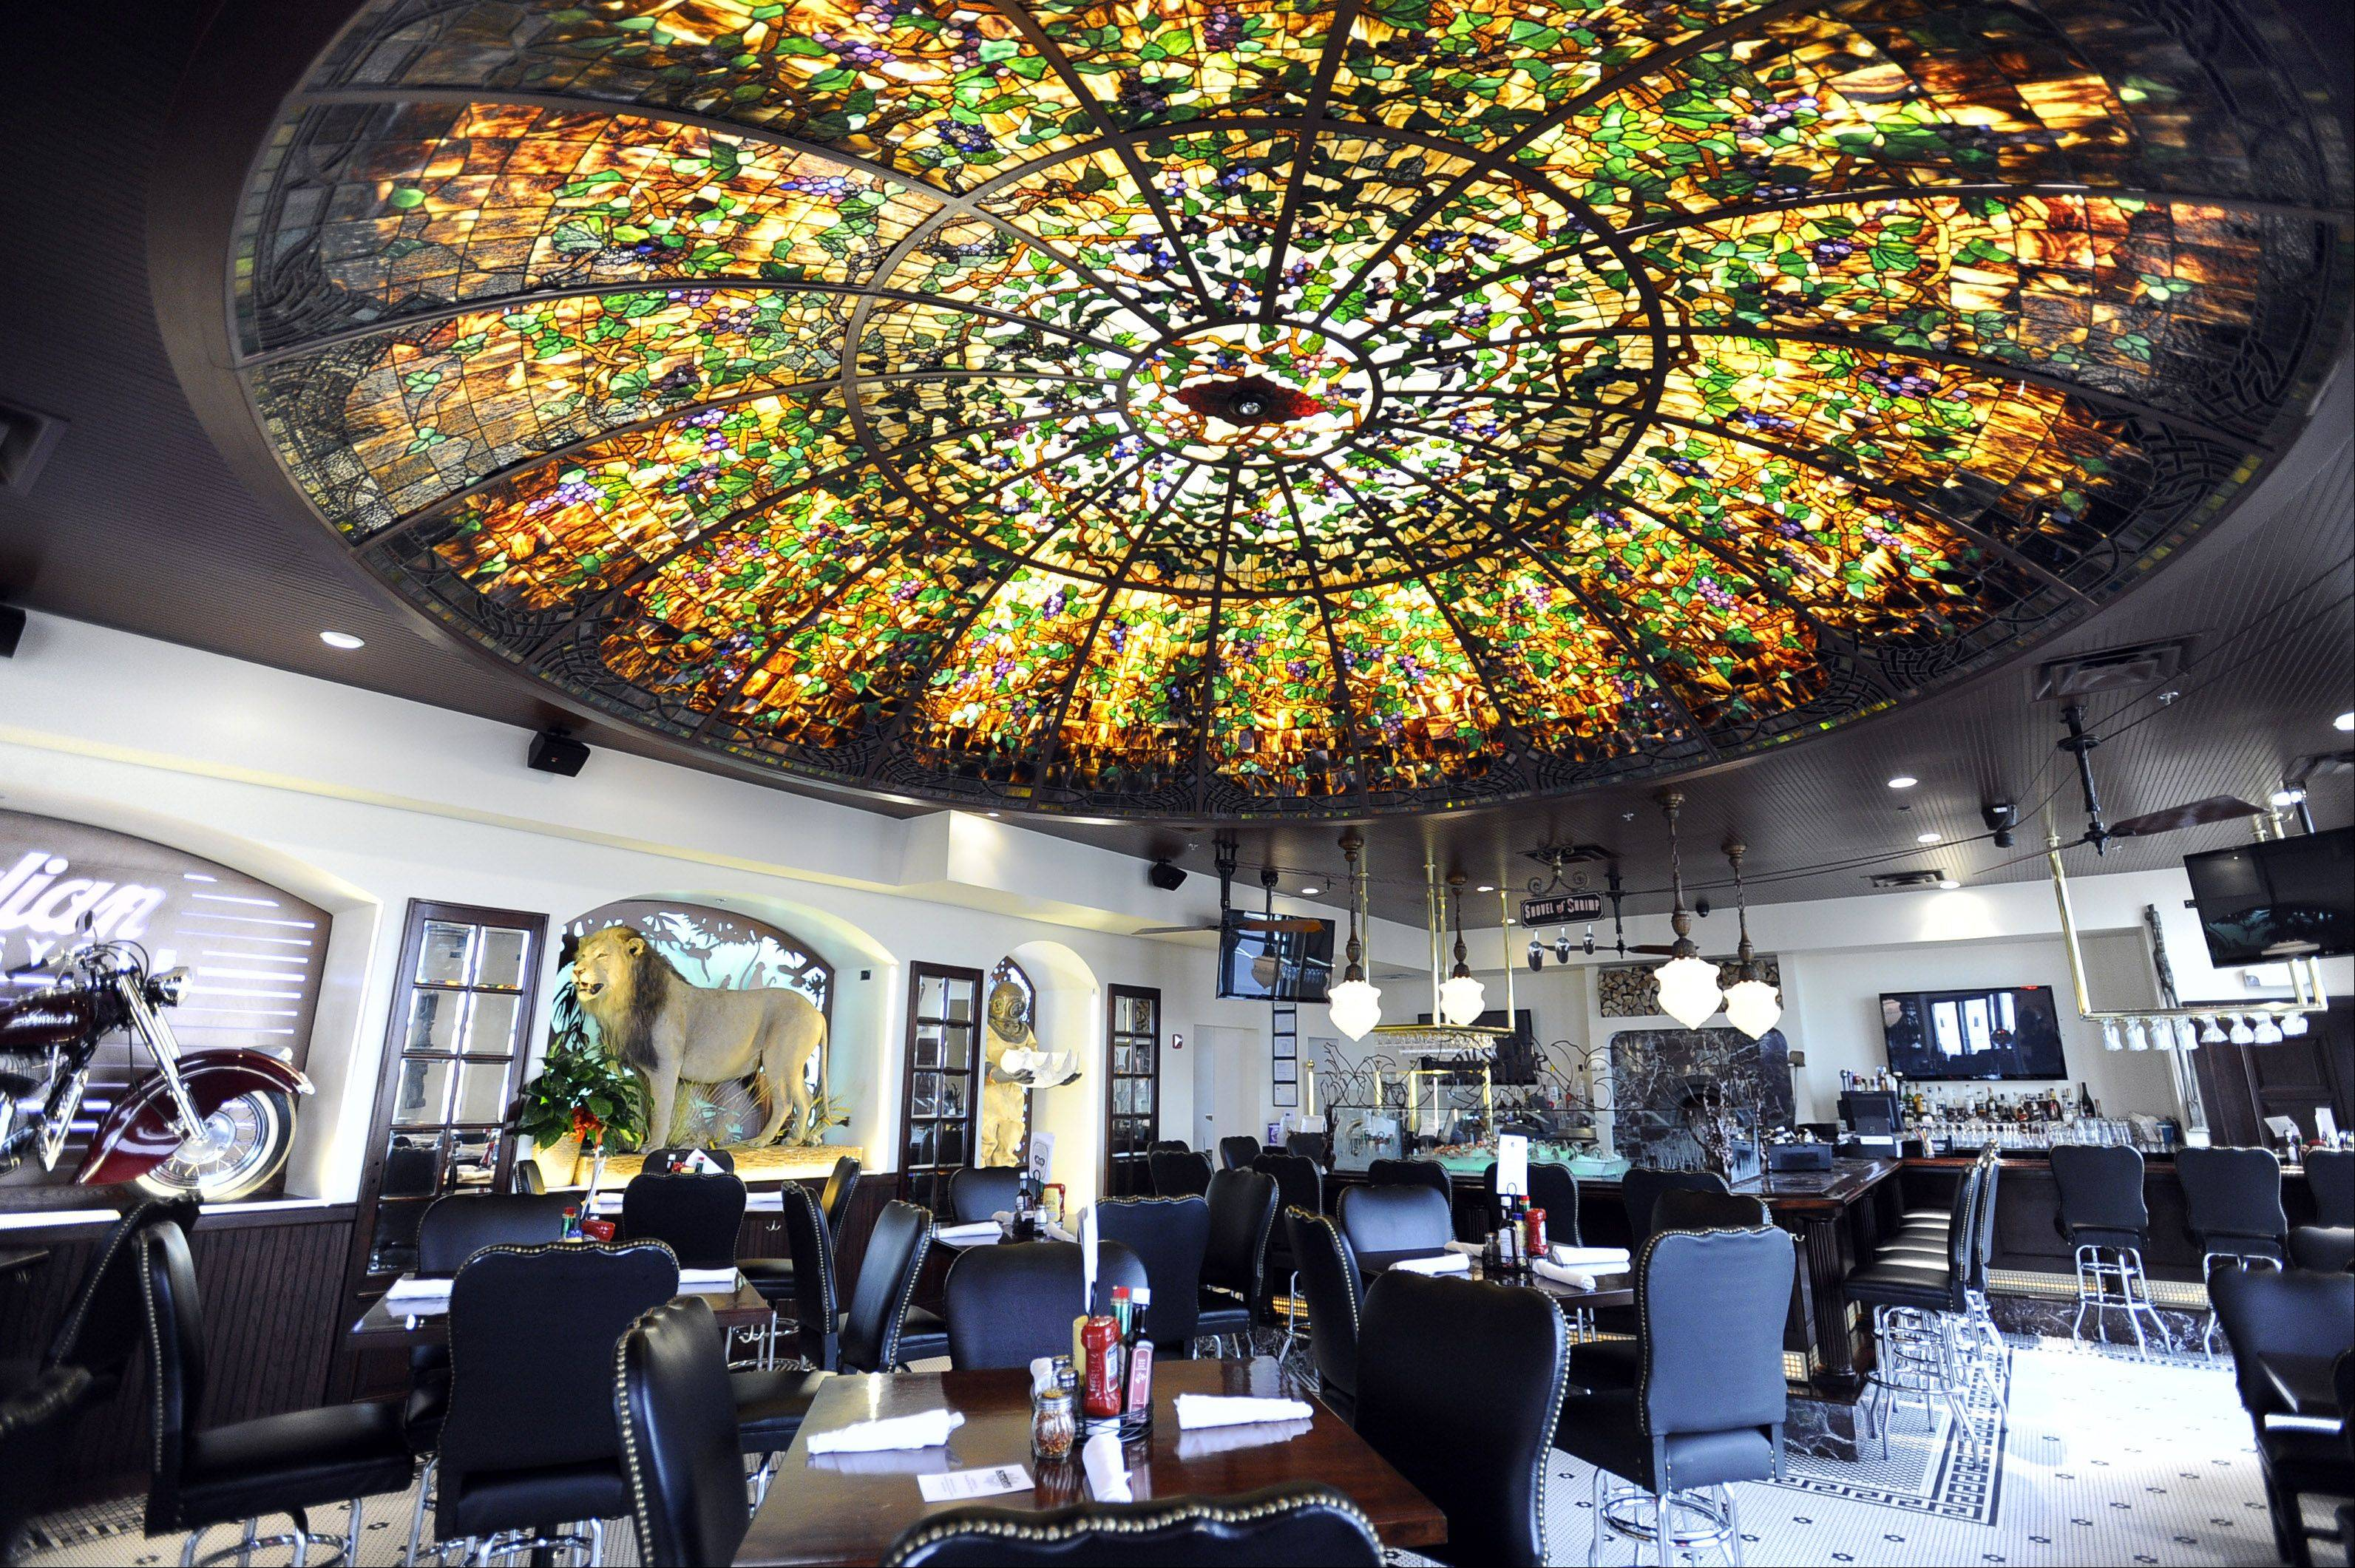 The monumental stained glass ceiling circa 1915 is breath-taking in the main dining room at the Stone Eagle Tavern in Hoffman Estates.